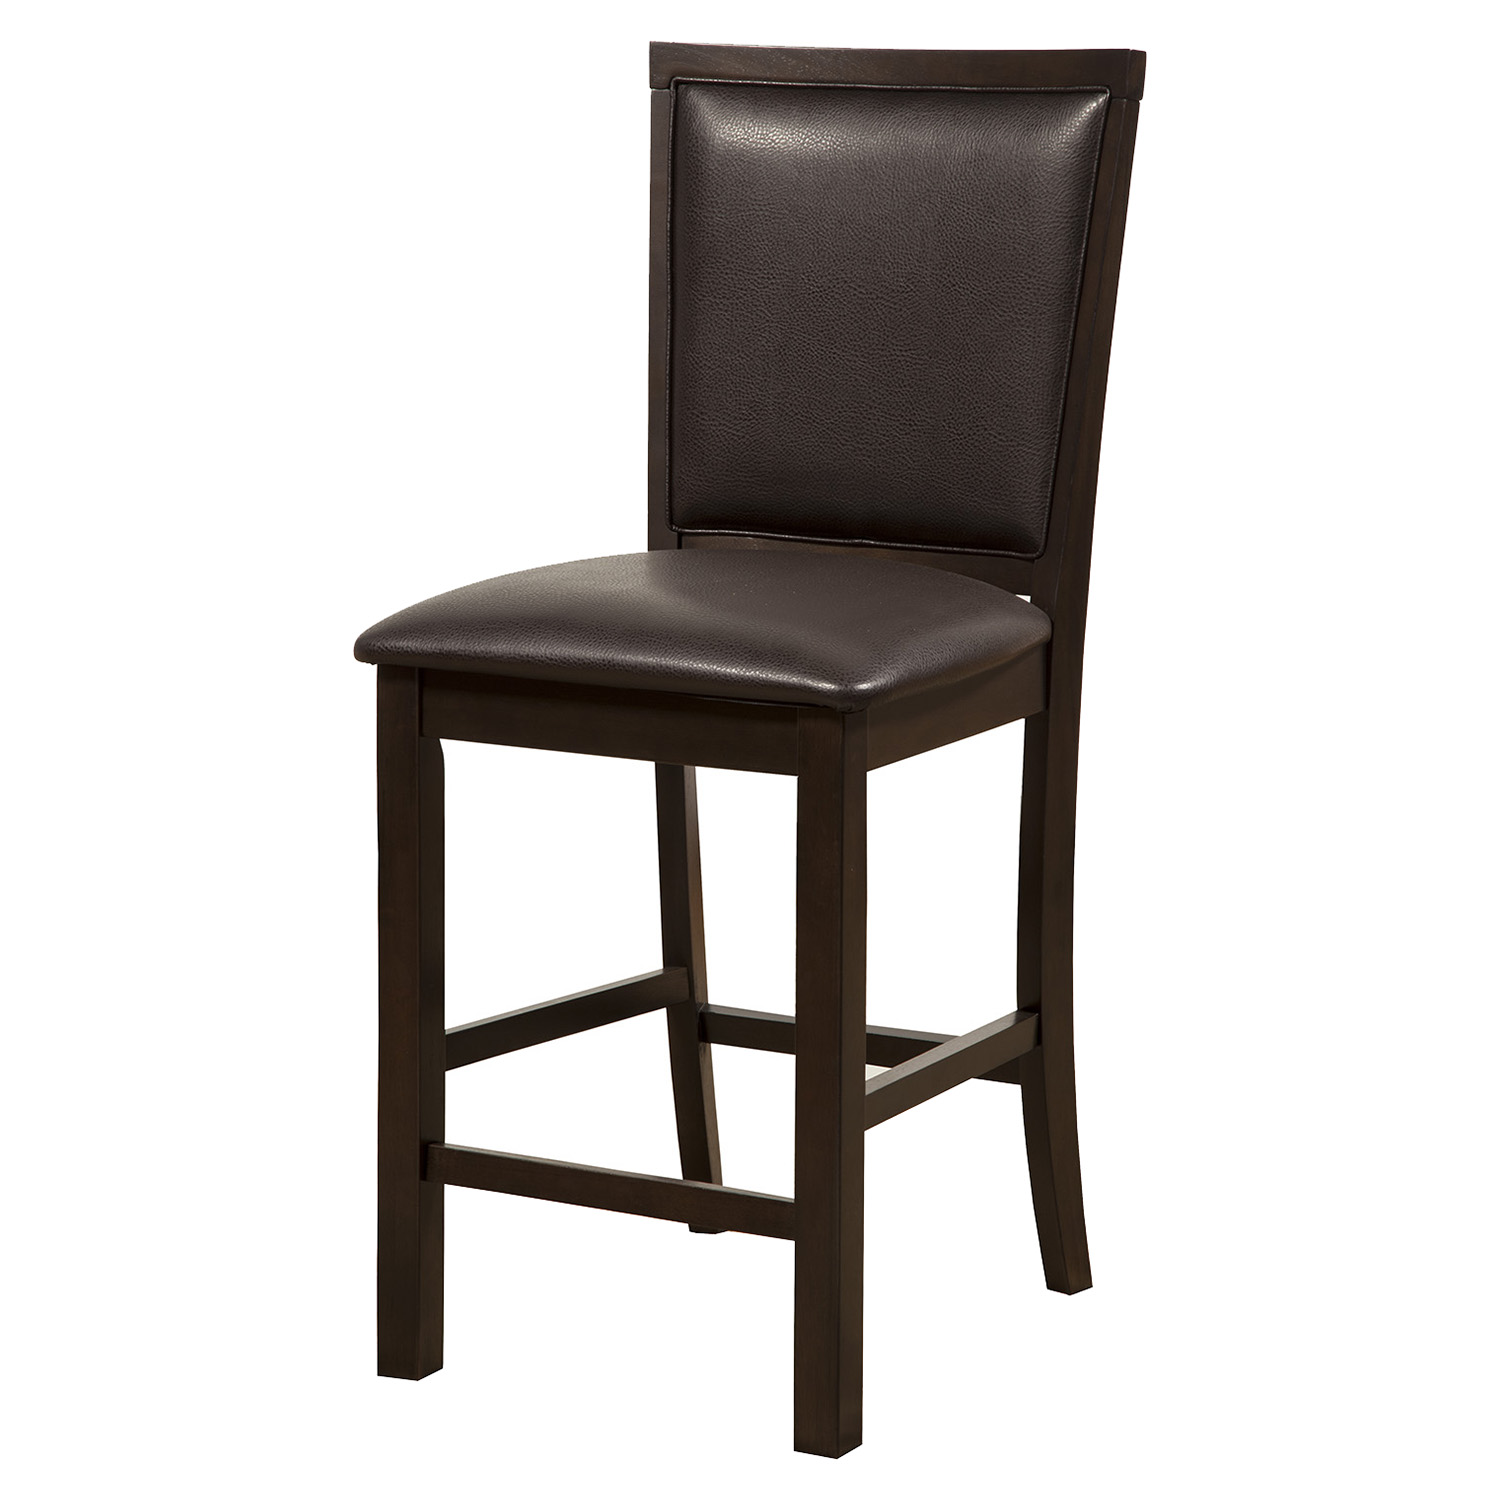 Davenport Pub Chair - Faux Leather, Espresso